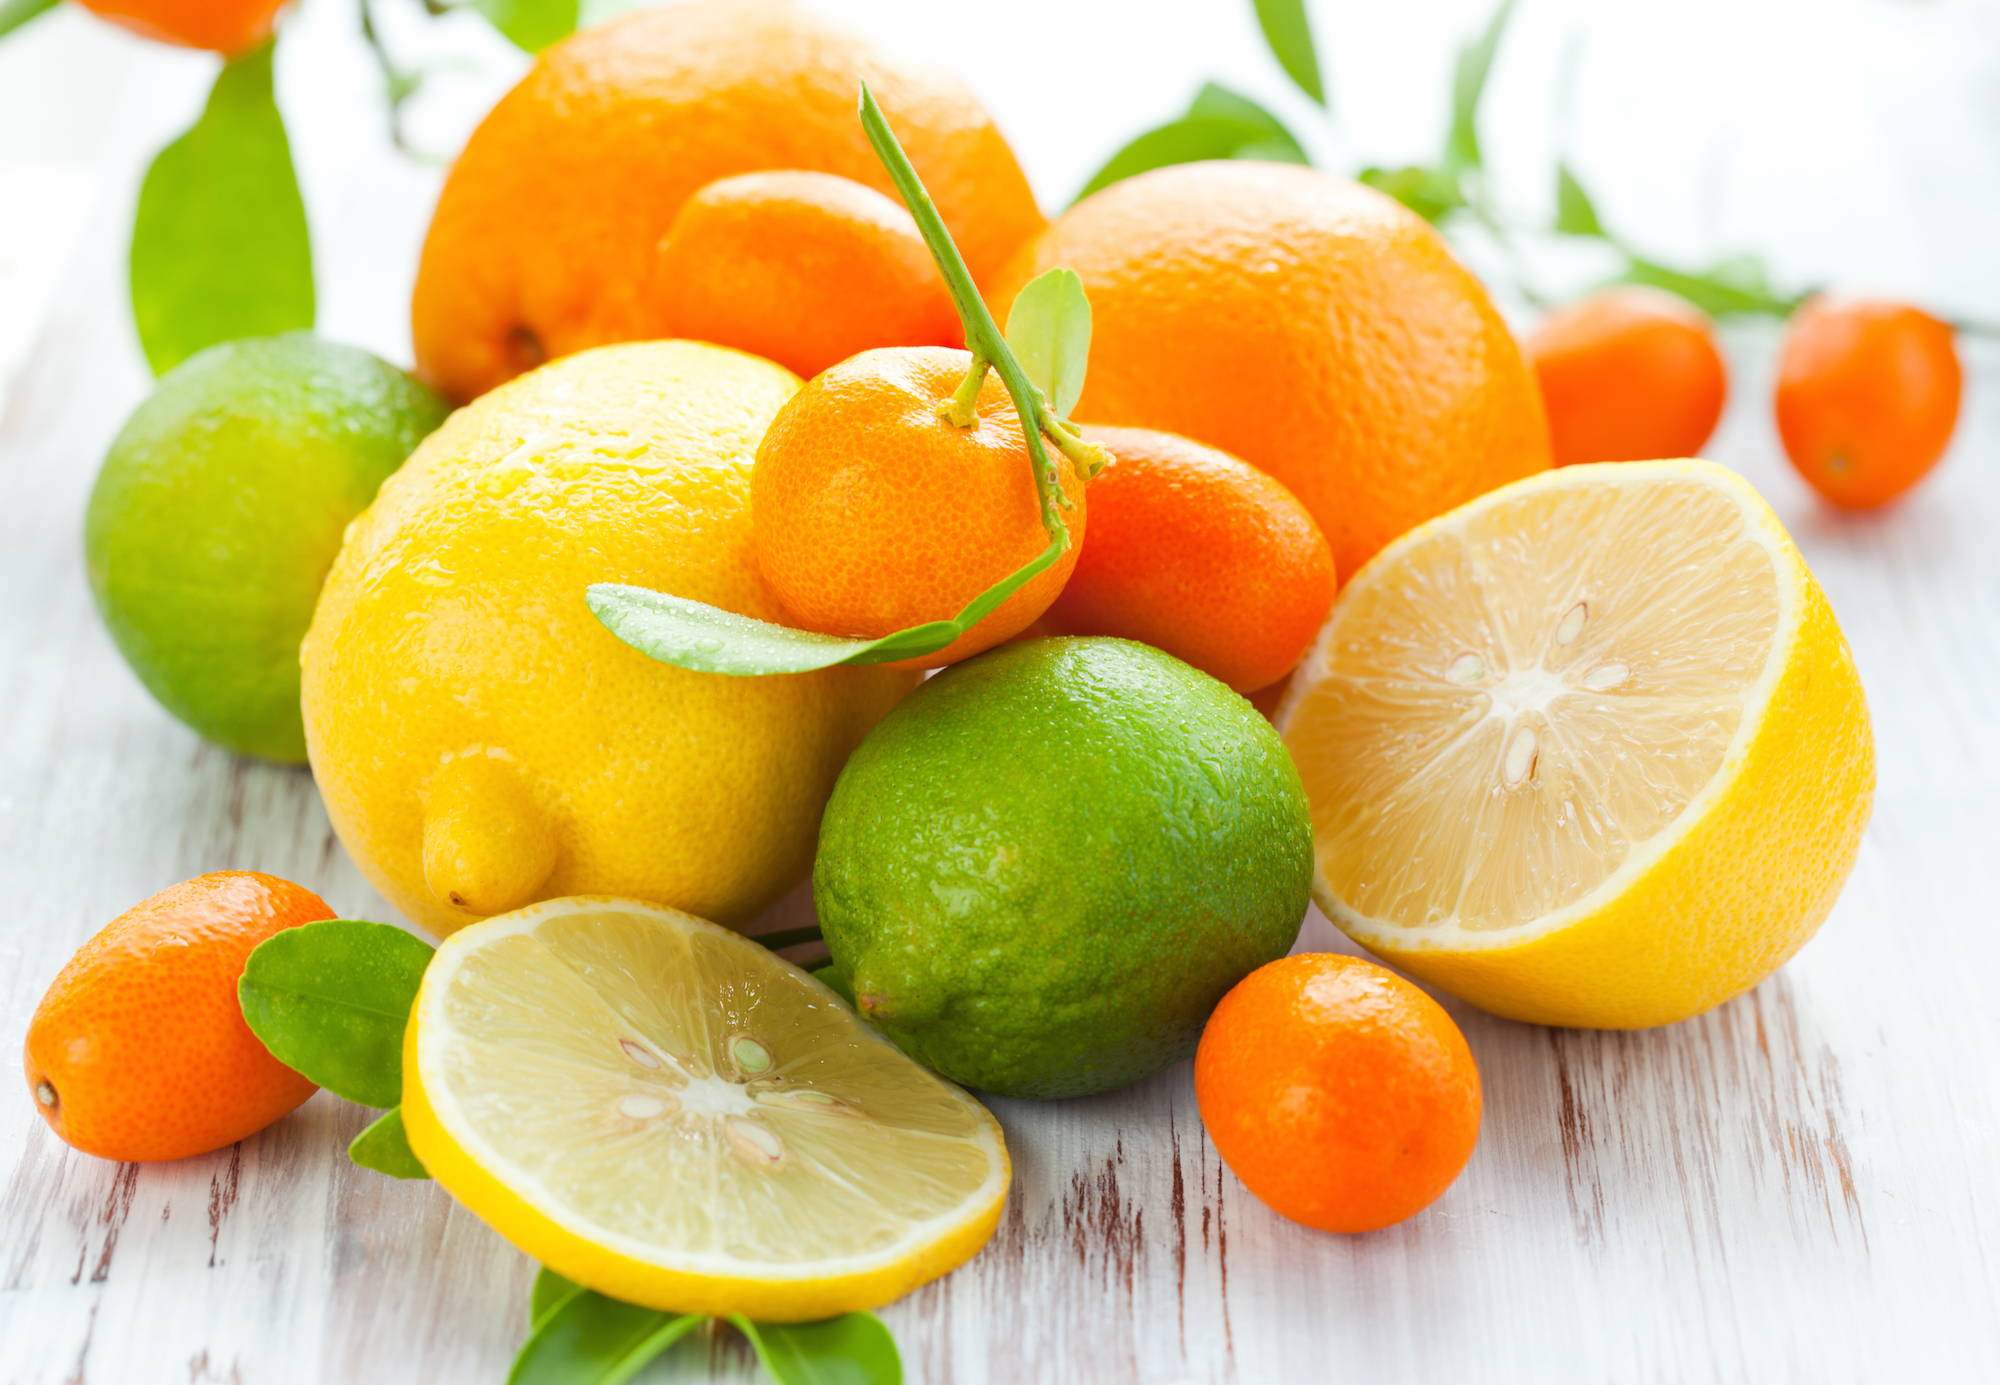 foods with vitamin C include citrus fruit